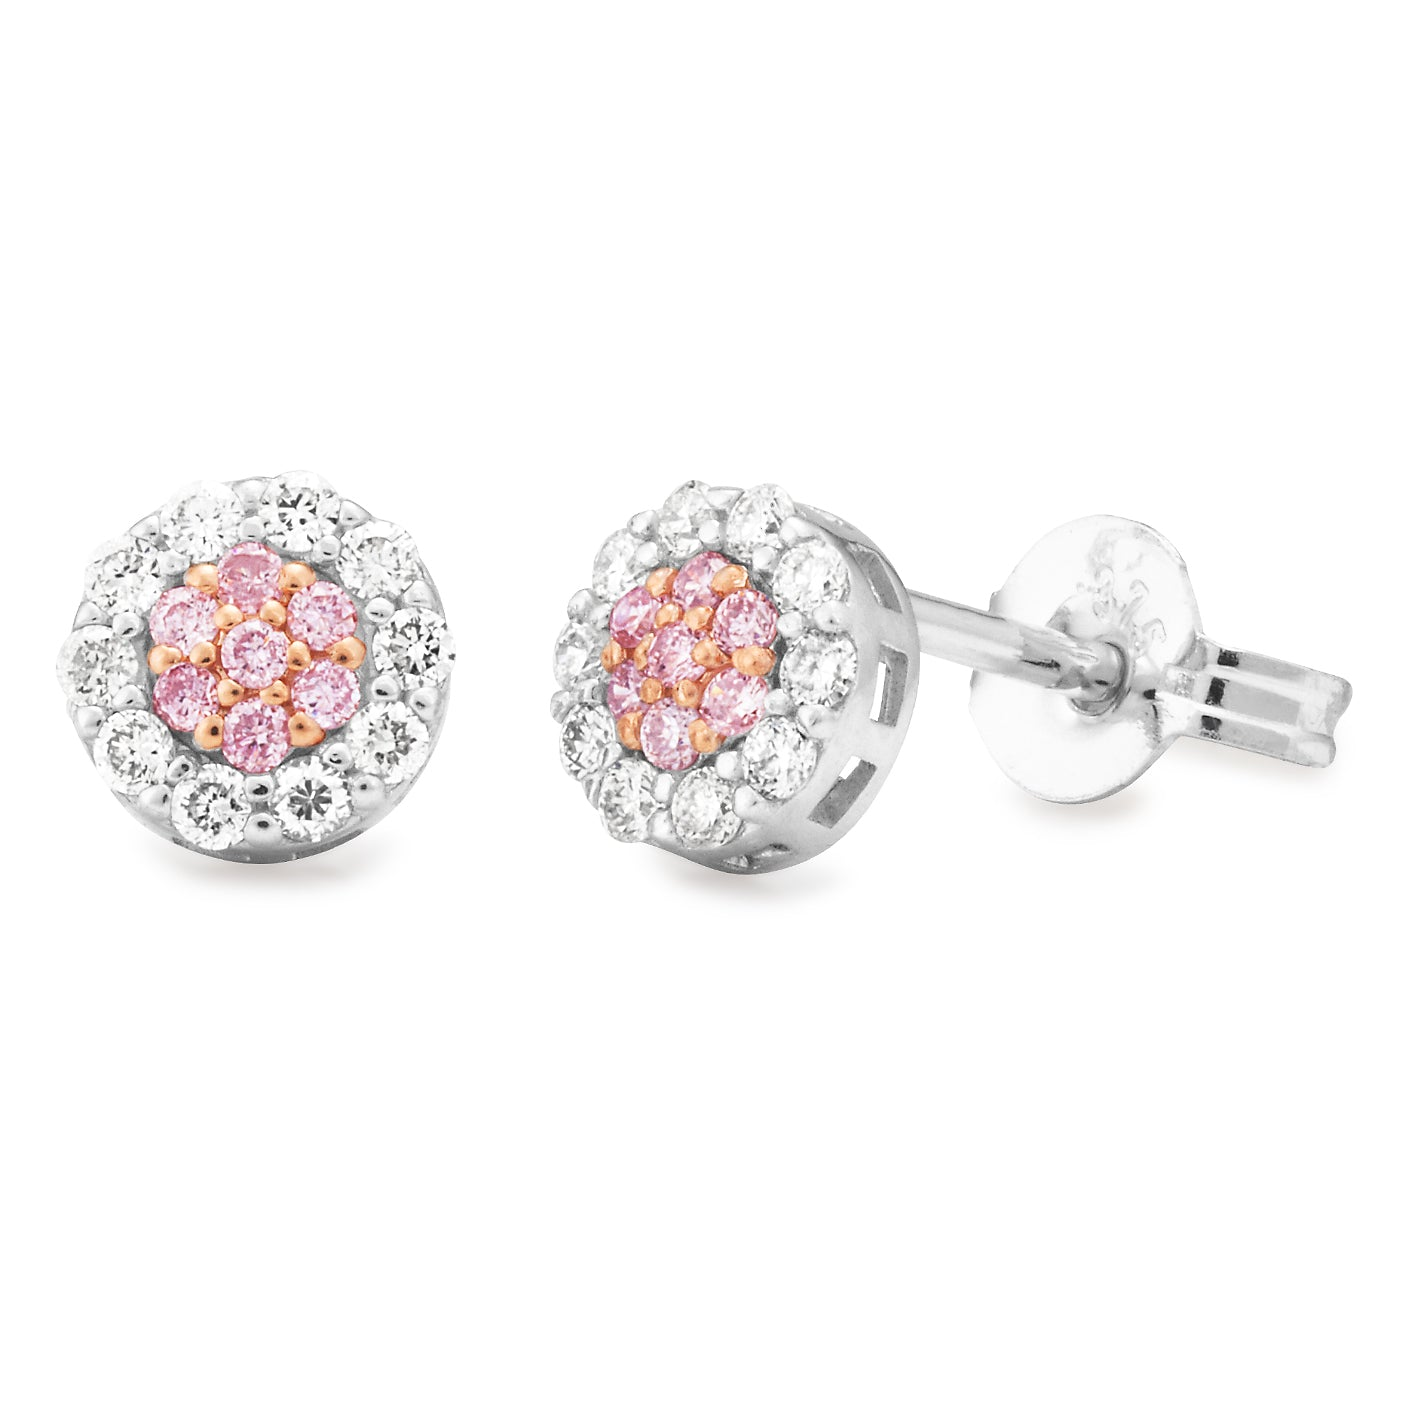 MMJ - Pink Diamond Claw/Bead Set Earring